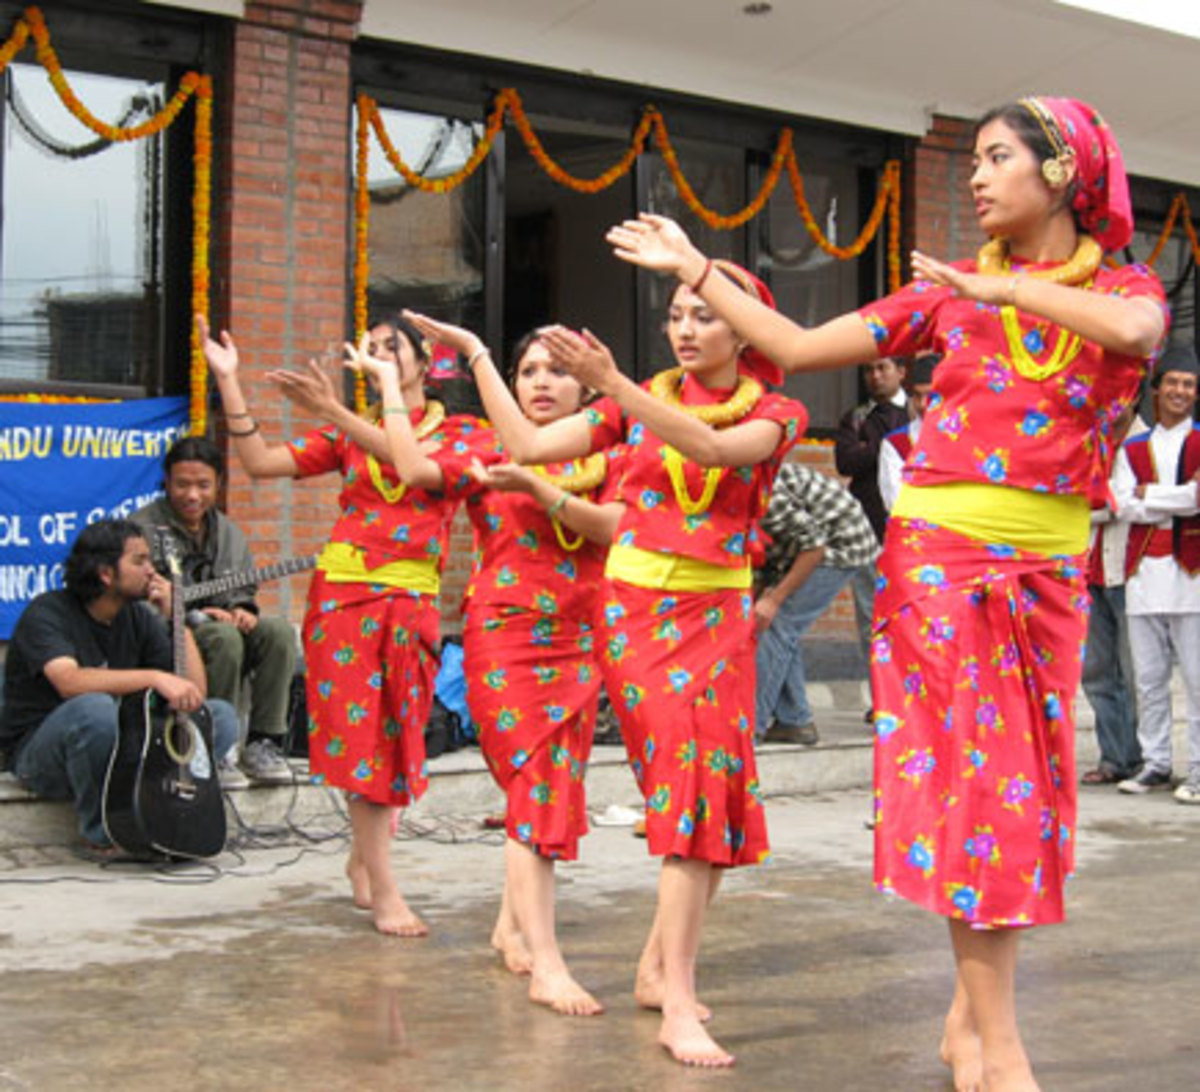 Girls Playing Bhailo in Nepal on 3rd Day's Night of Tihar festival